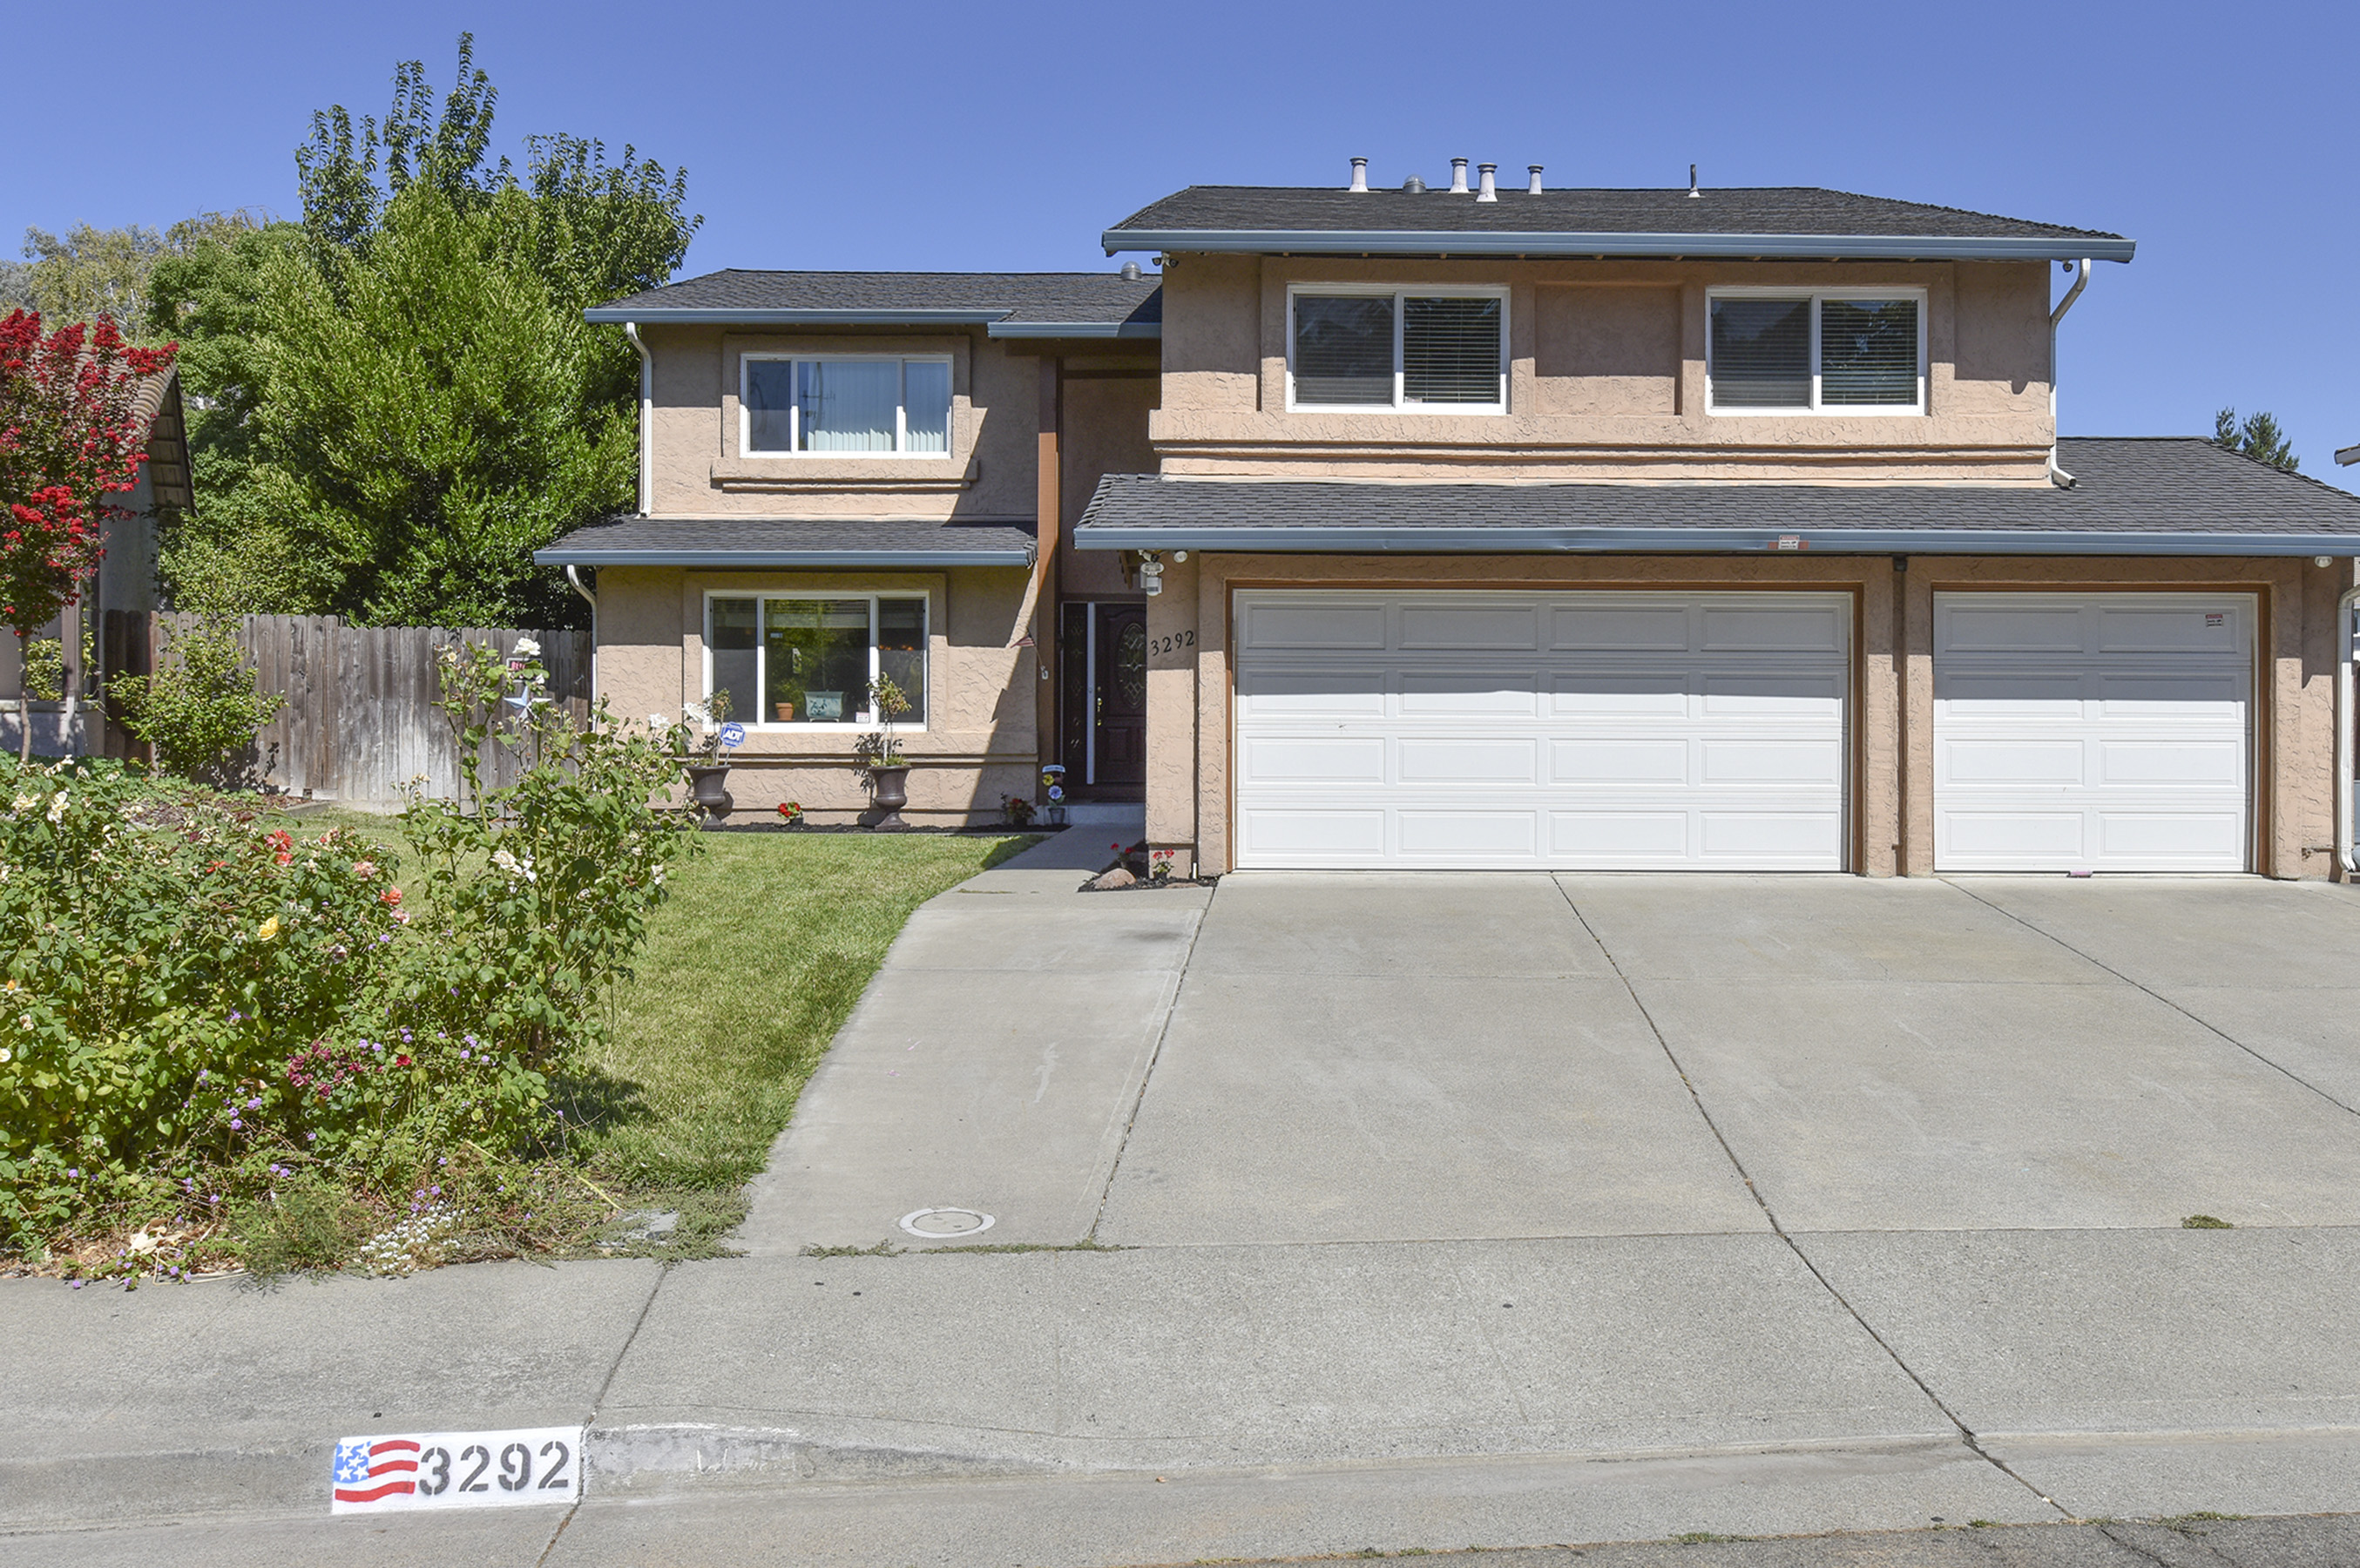 sales property at 3292 Arroyo Dr, Fairfield, CA 94533